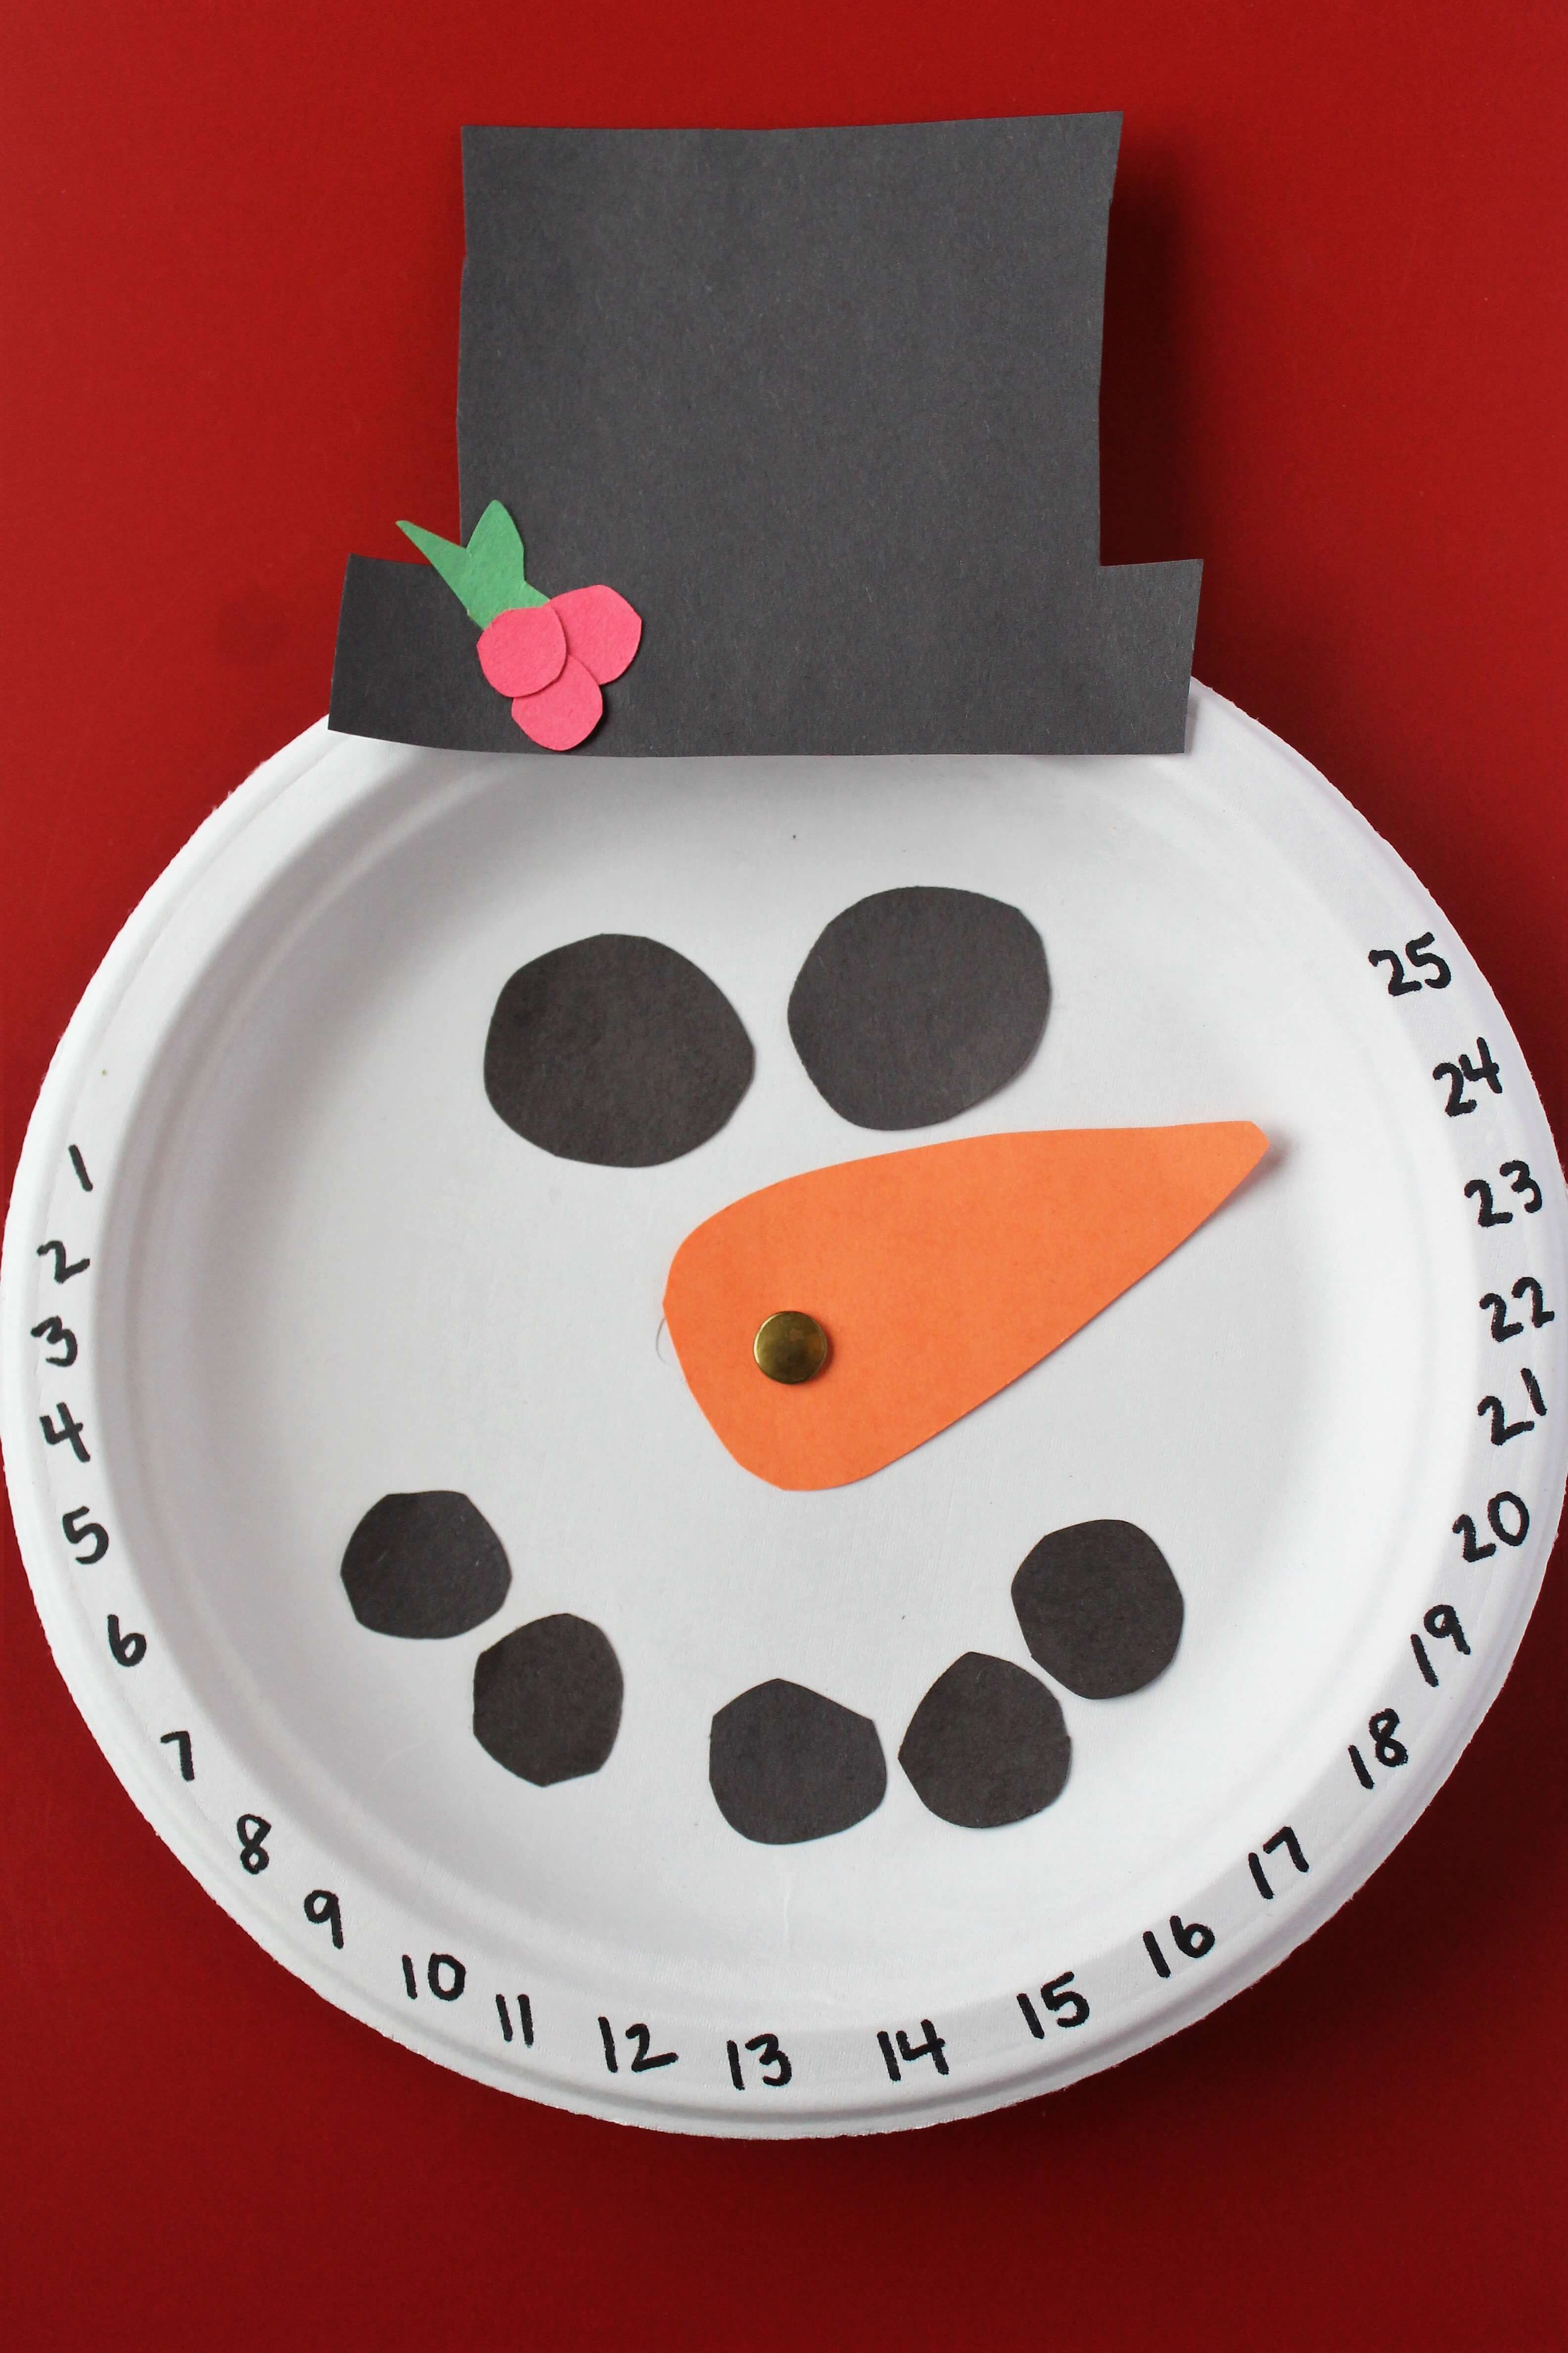 How Many More Days Until Christmas.Snowman Christmas Countdown Craft Christmas Crafts For